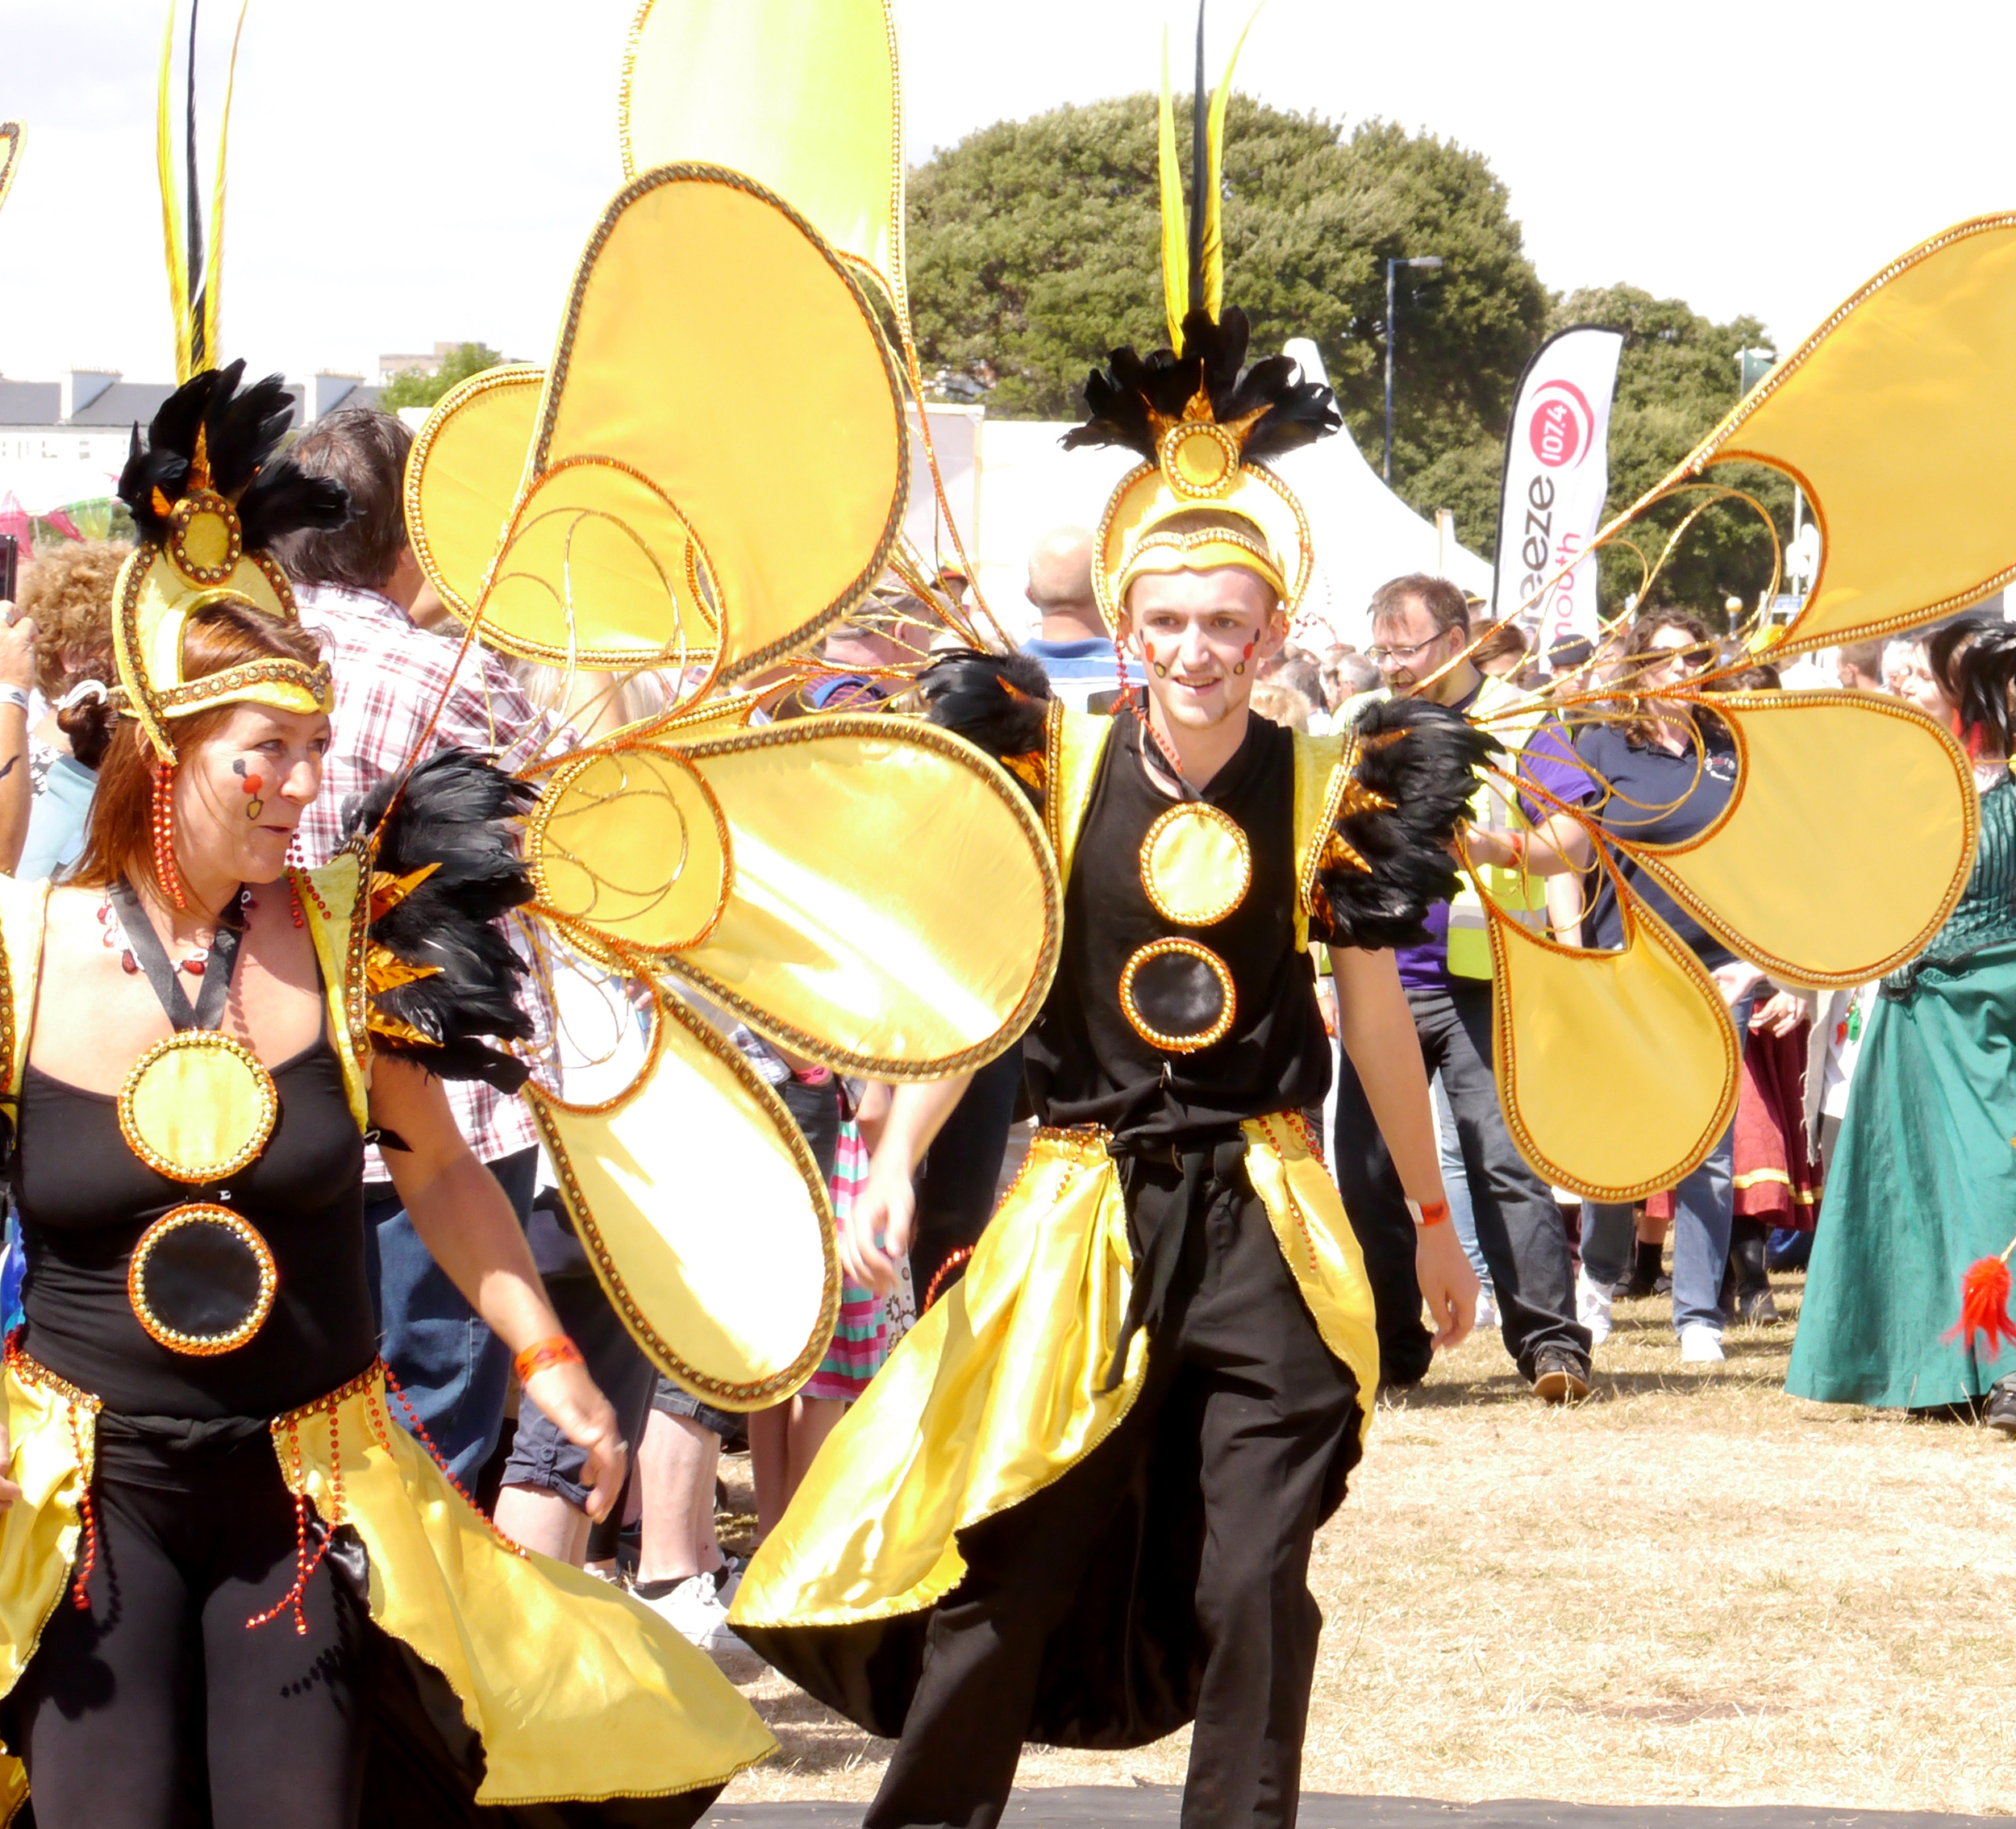 The Carnival begins at Southsea Show